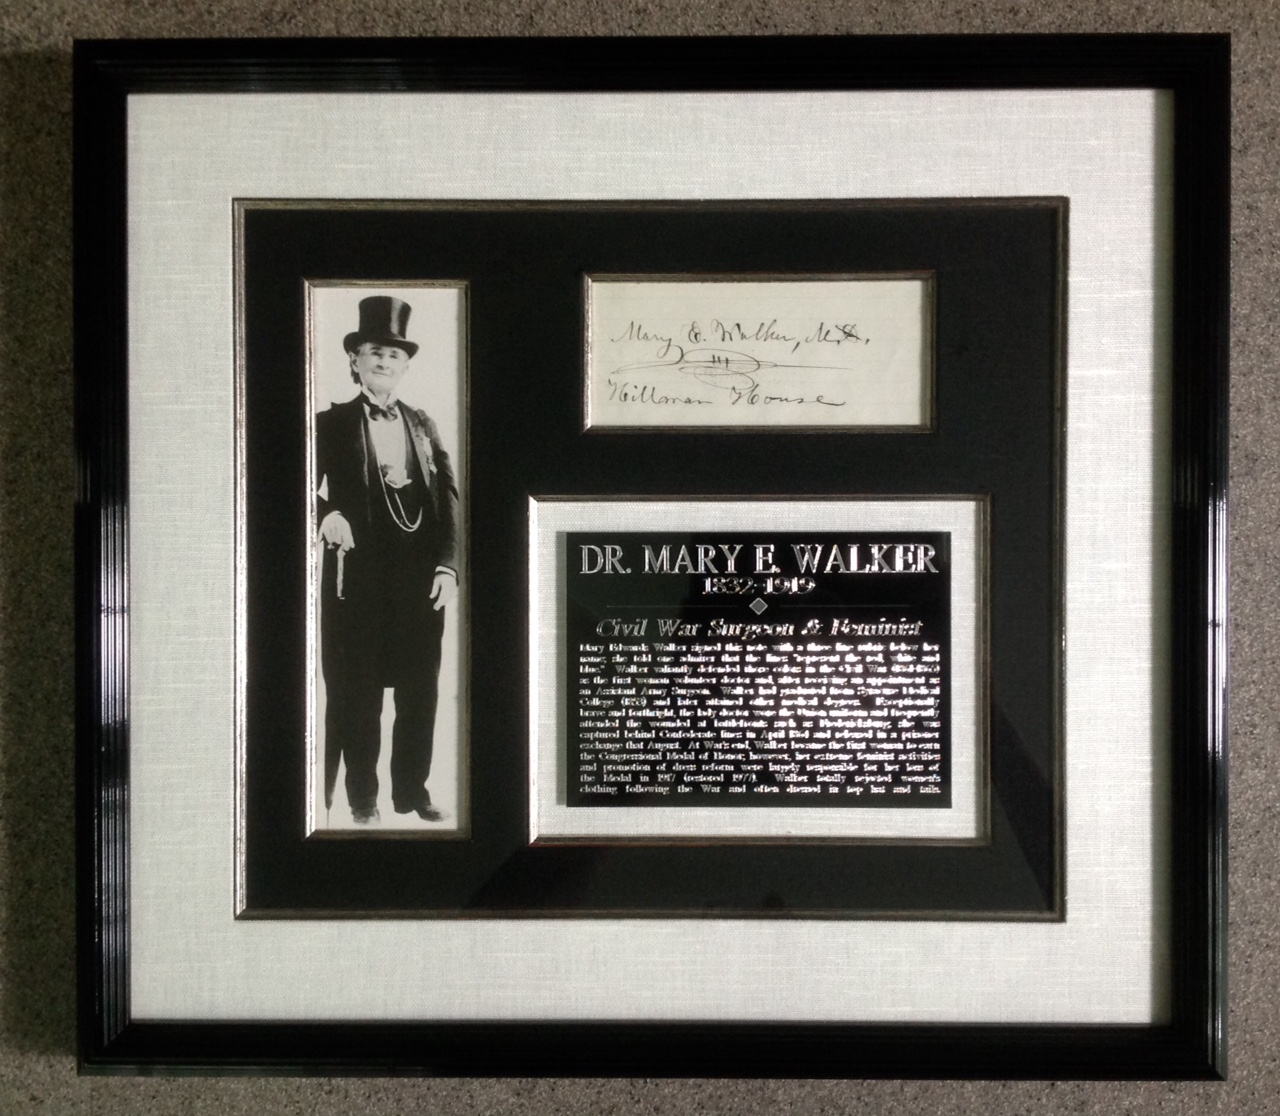 Mary Walker, Medal of Honor Recipient display and signature